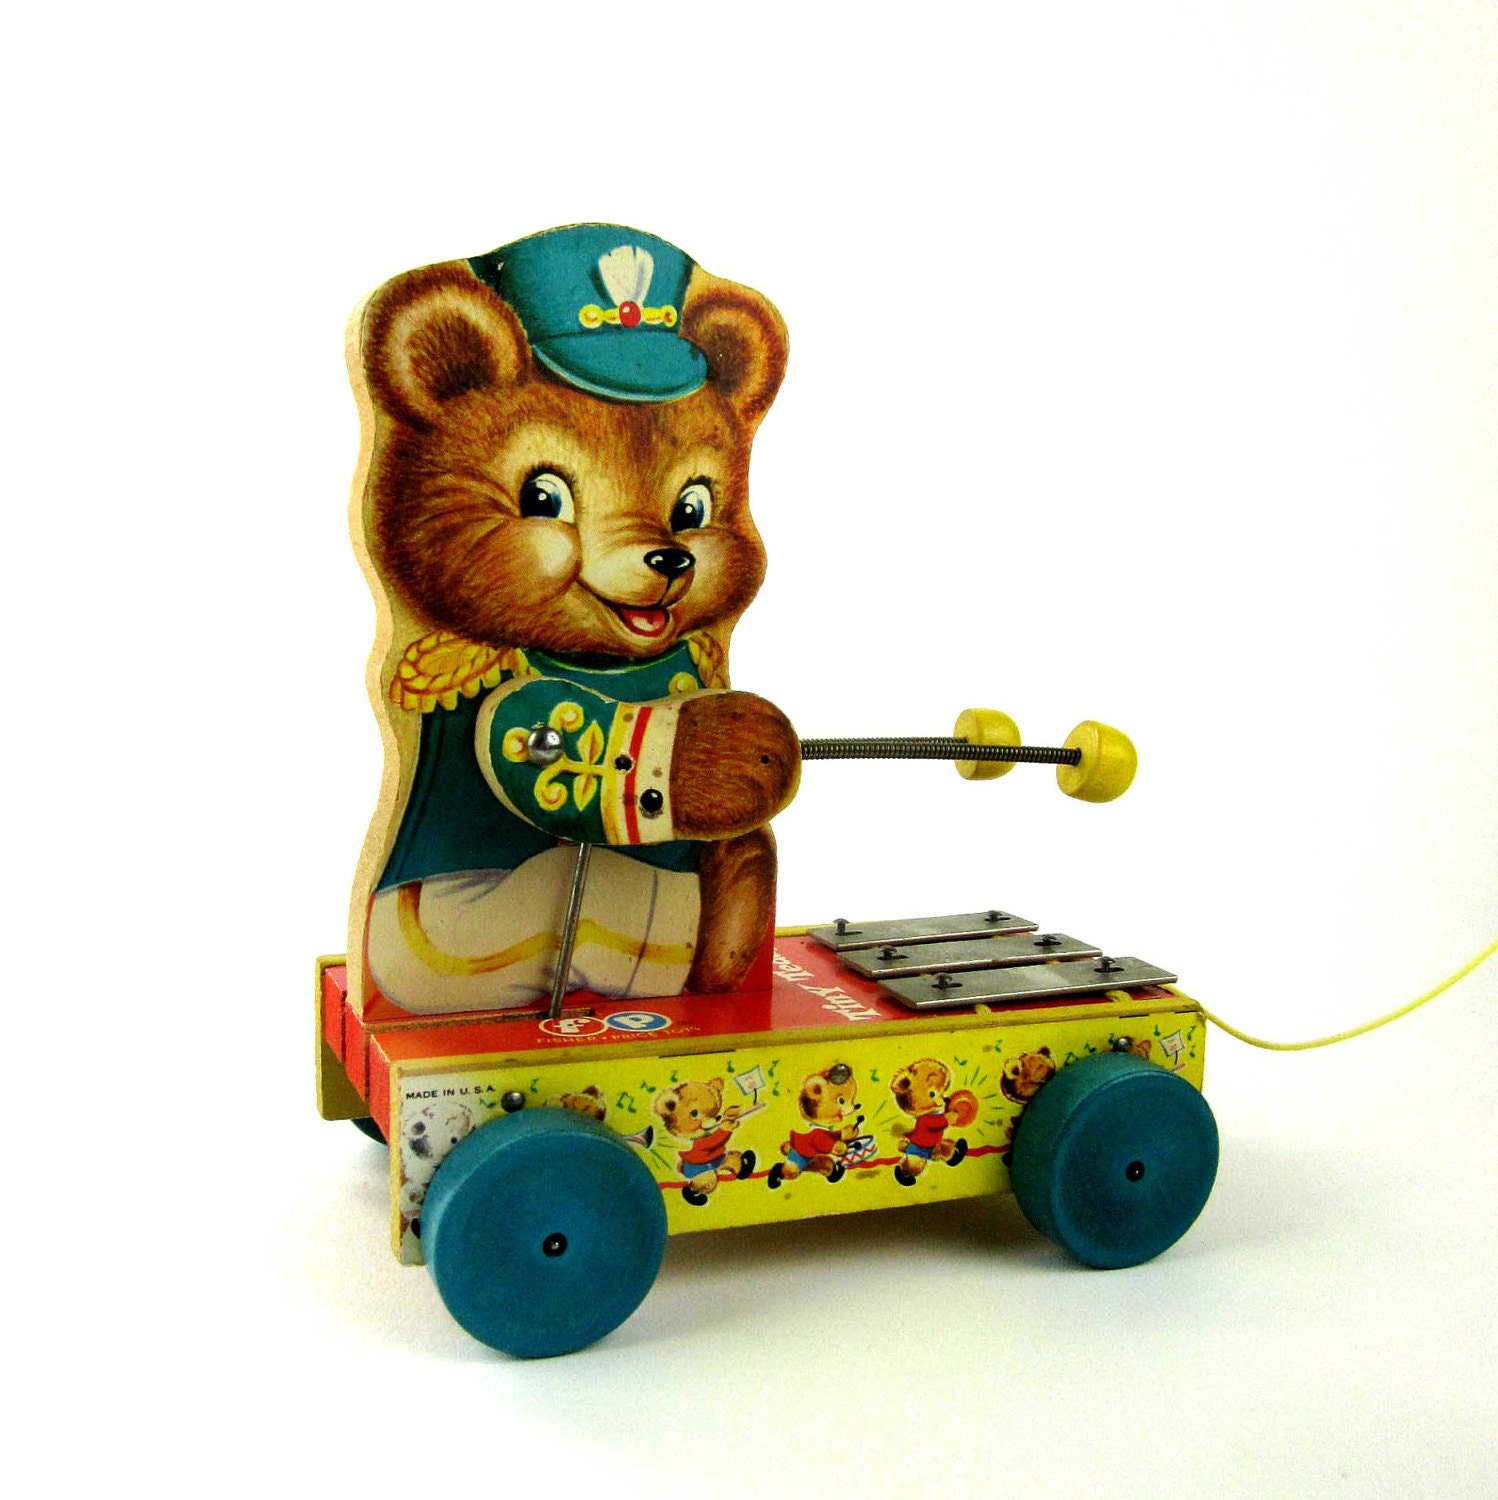 Fisher Price Tiny Teddy Chime Pull Toy 1962 / Excellent Condition - AttysSproutVintage